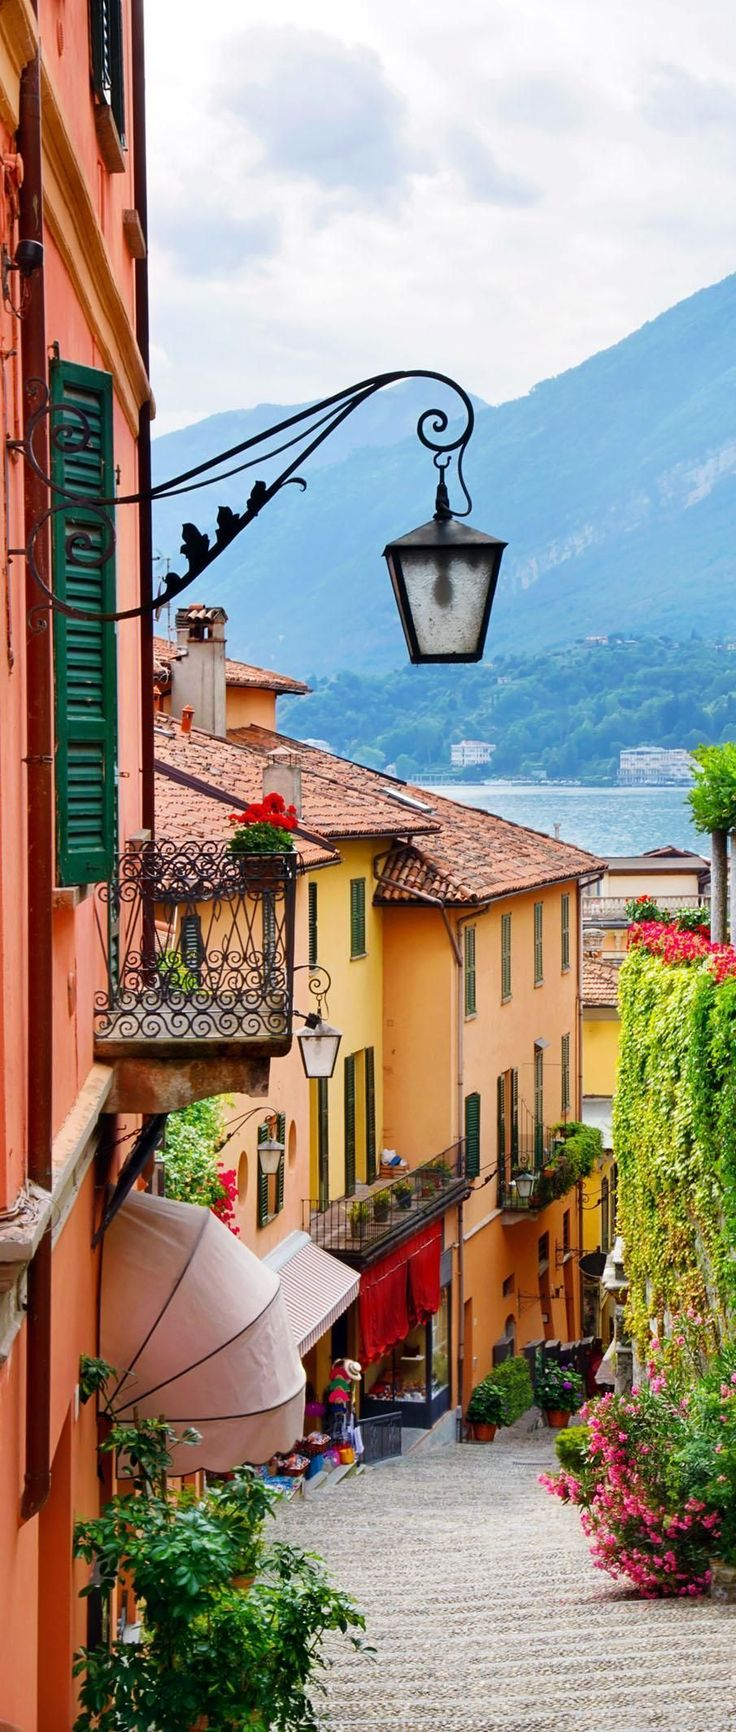 Picturesque small town street view in Bellagio, Lake Como. Italy.